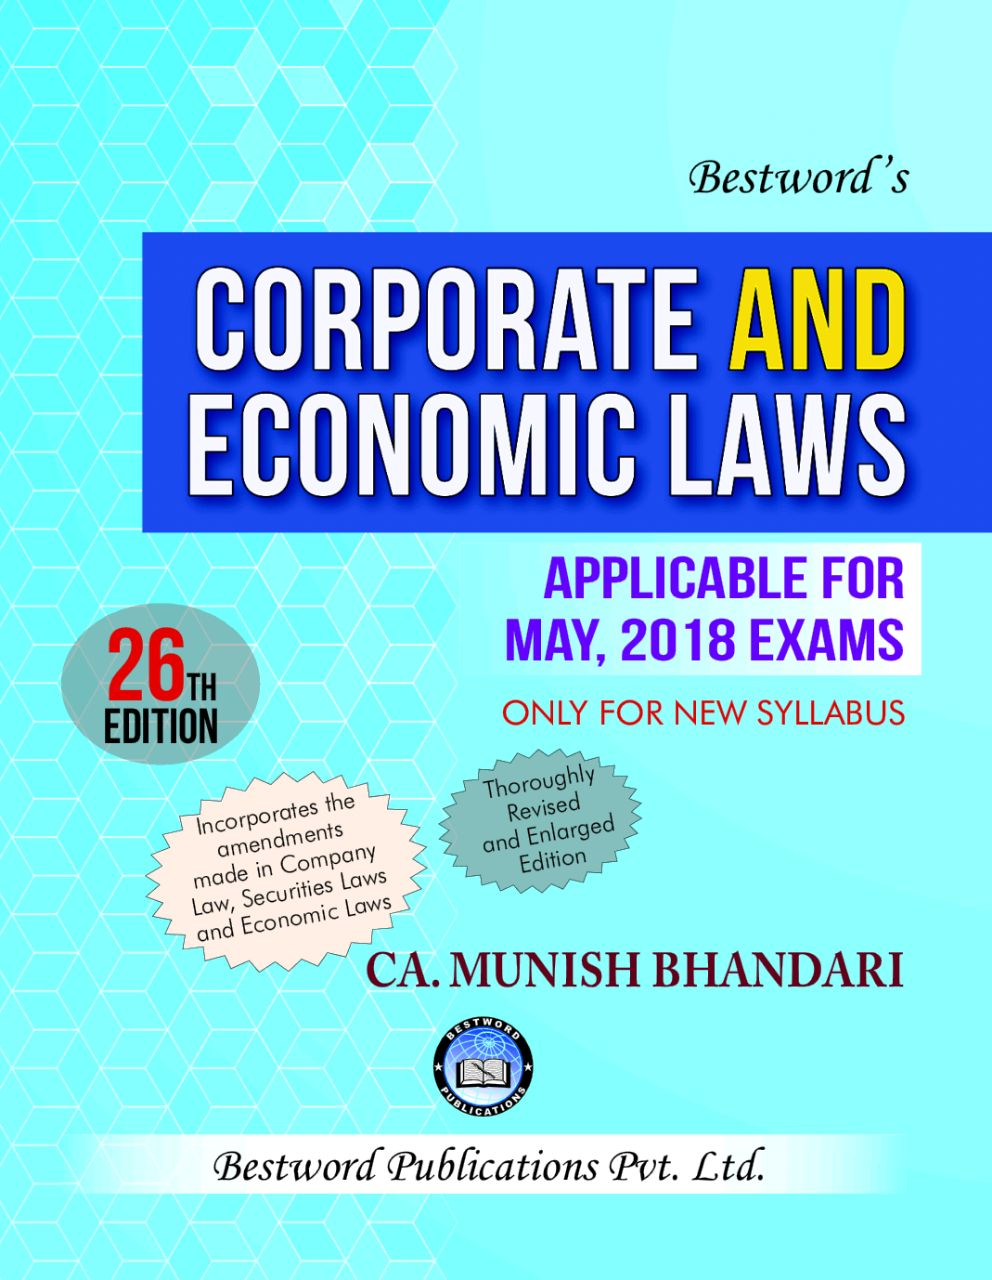 Bestword Corporate And Economic Laws New Syllabus for CA Final By Munish Bhandari Applicable for May 2018 Exam